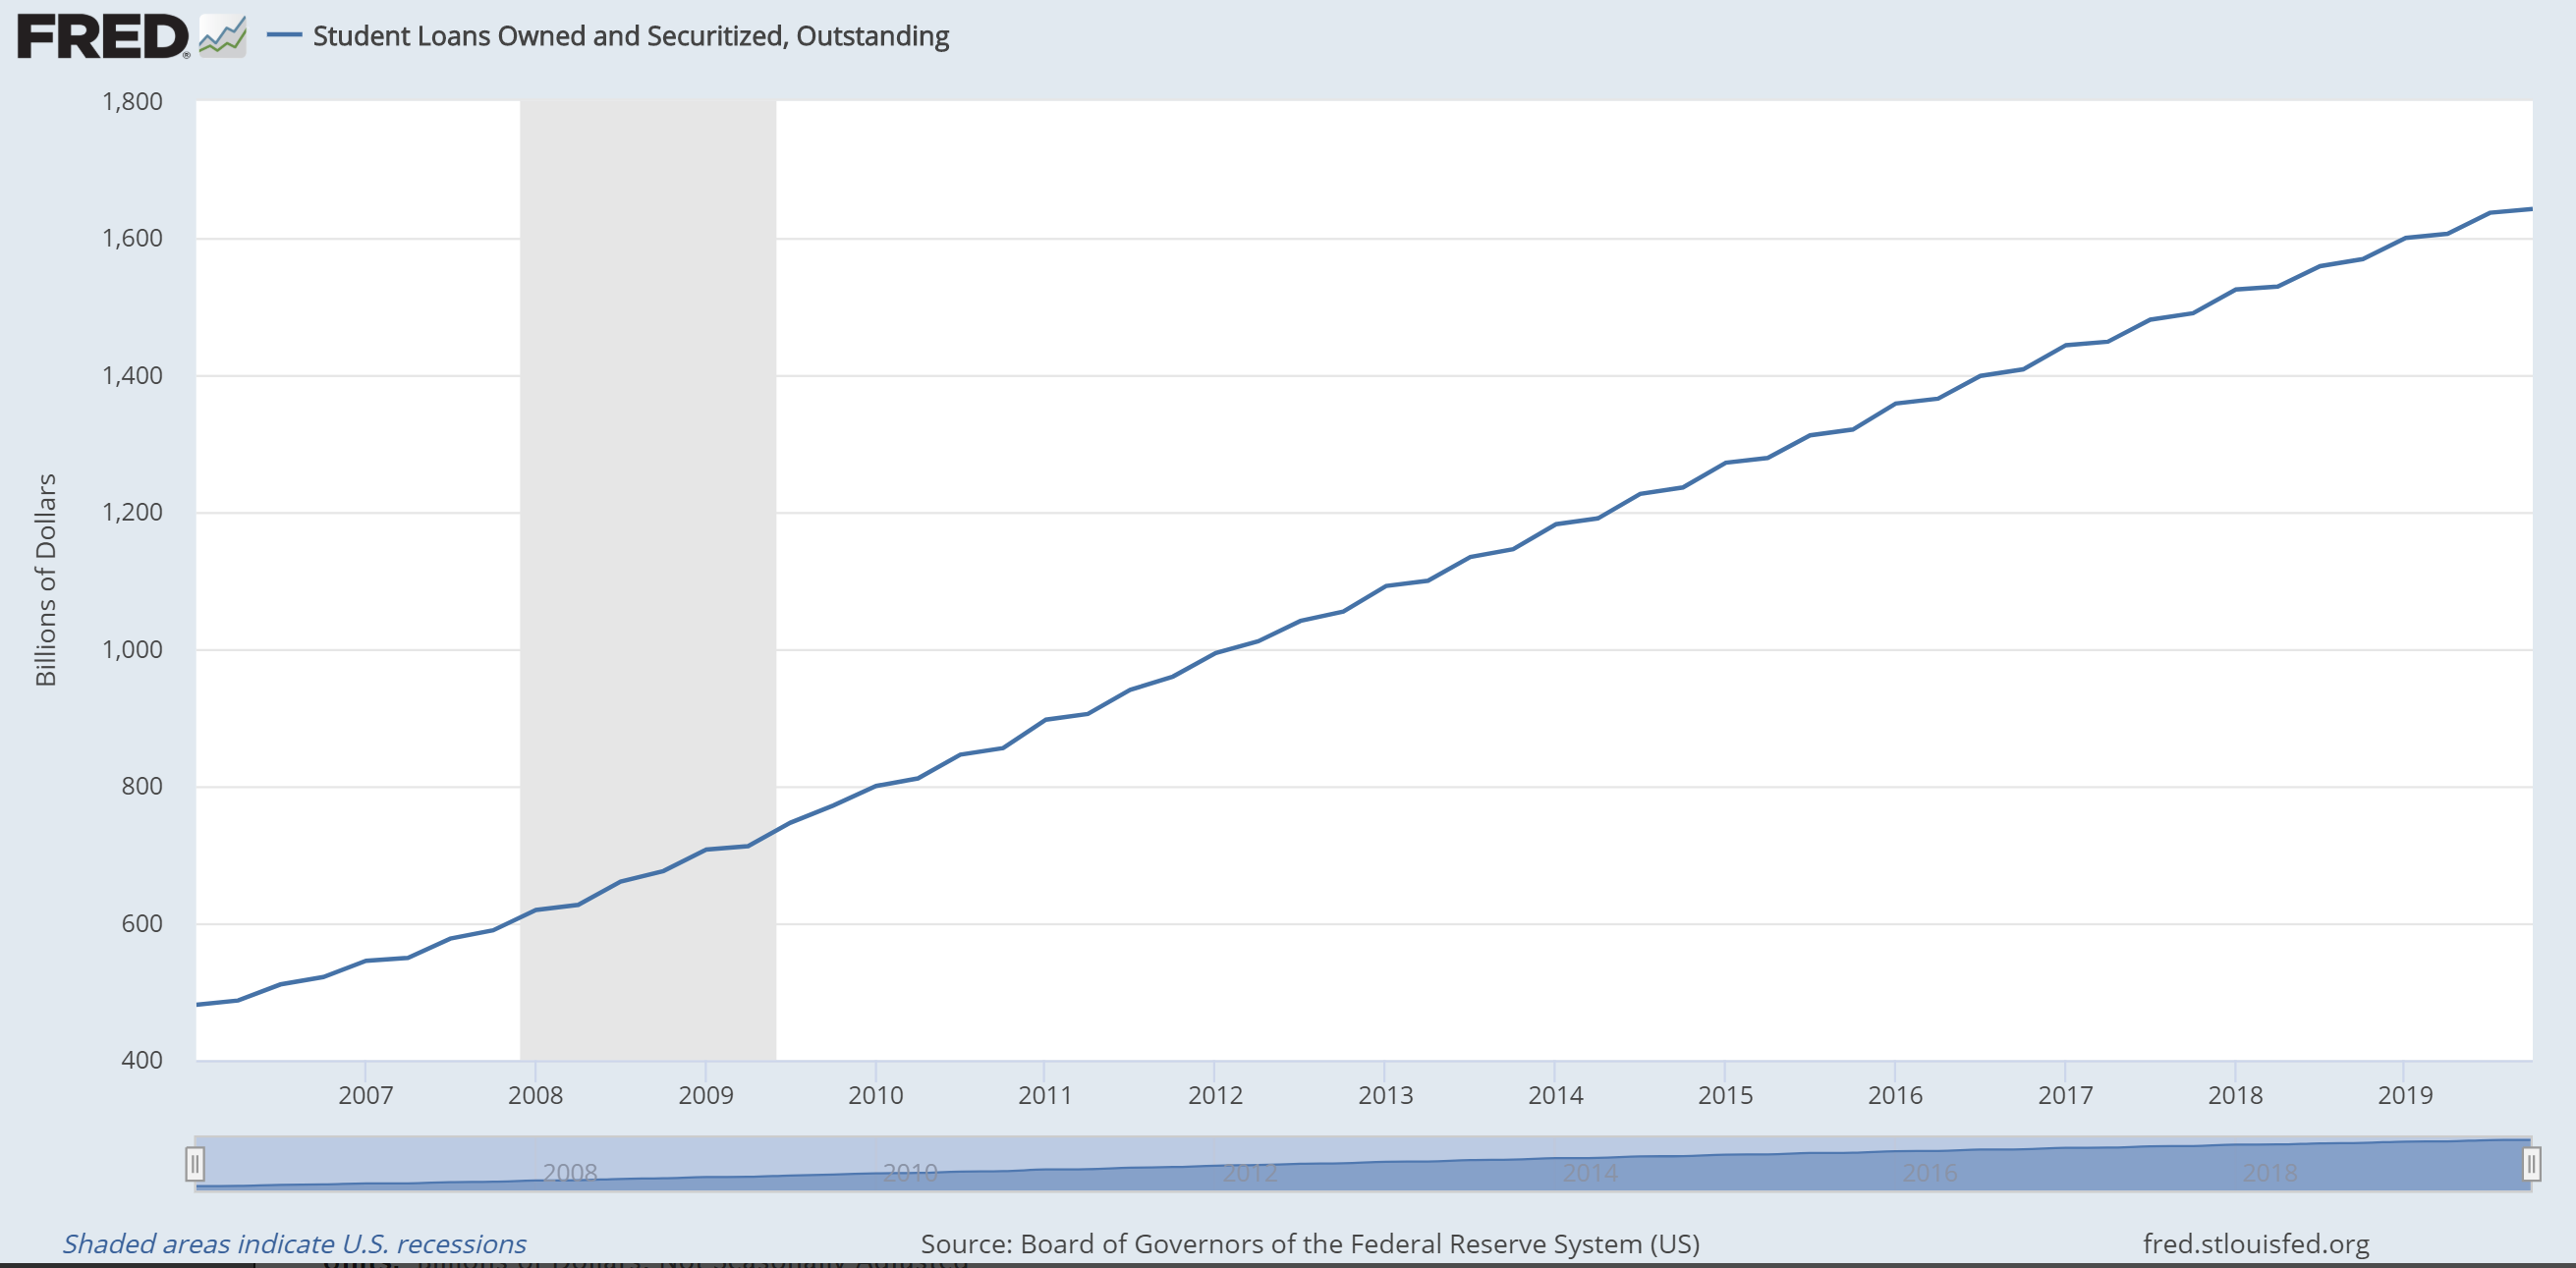 Graph showing trend in student loan borrowing since 2006